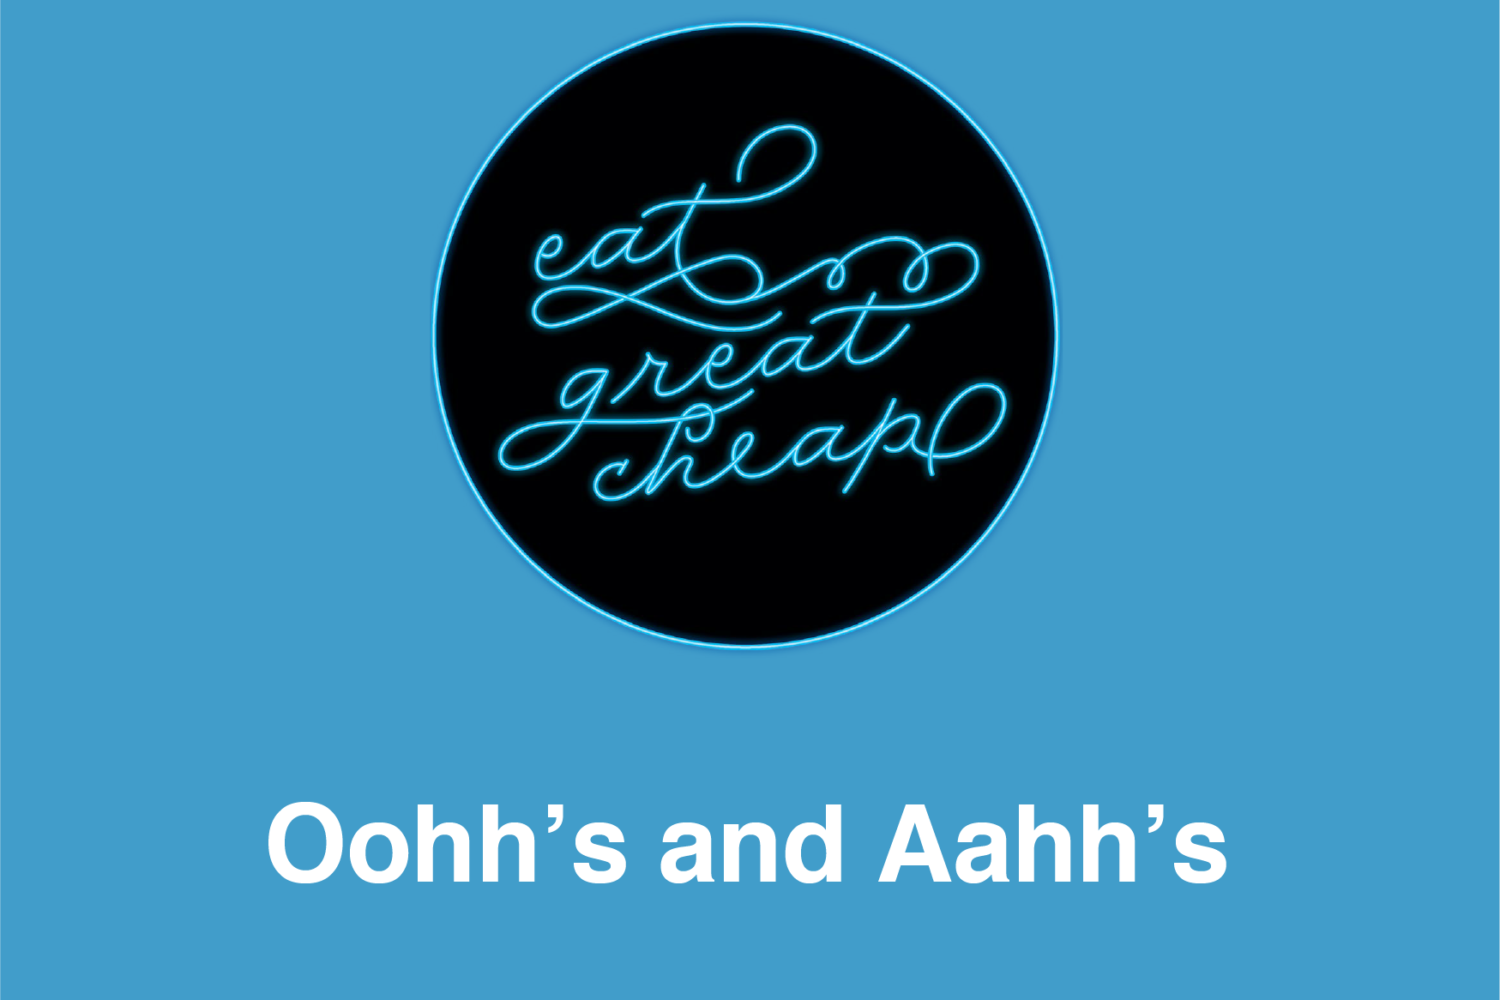 Cheap Eats 2019: Oohh's and Aahh's